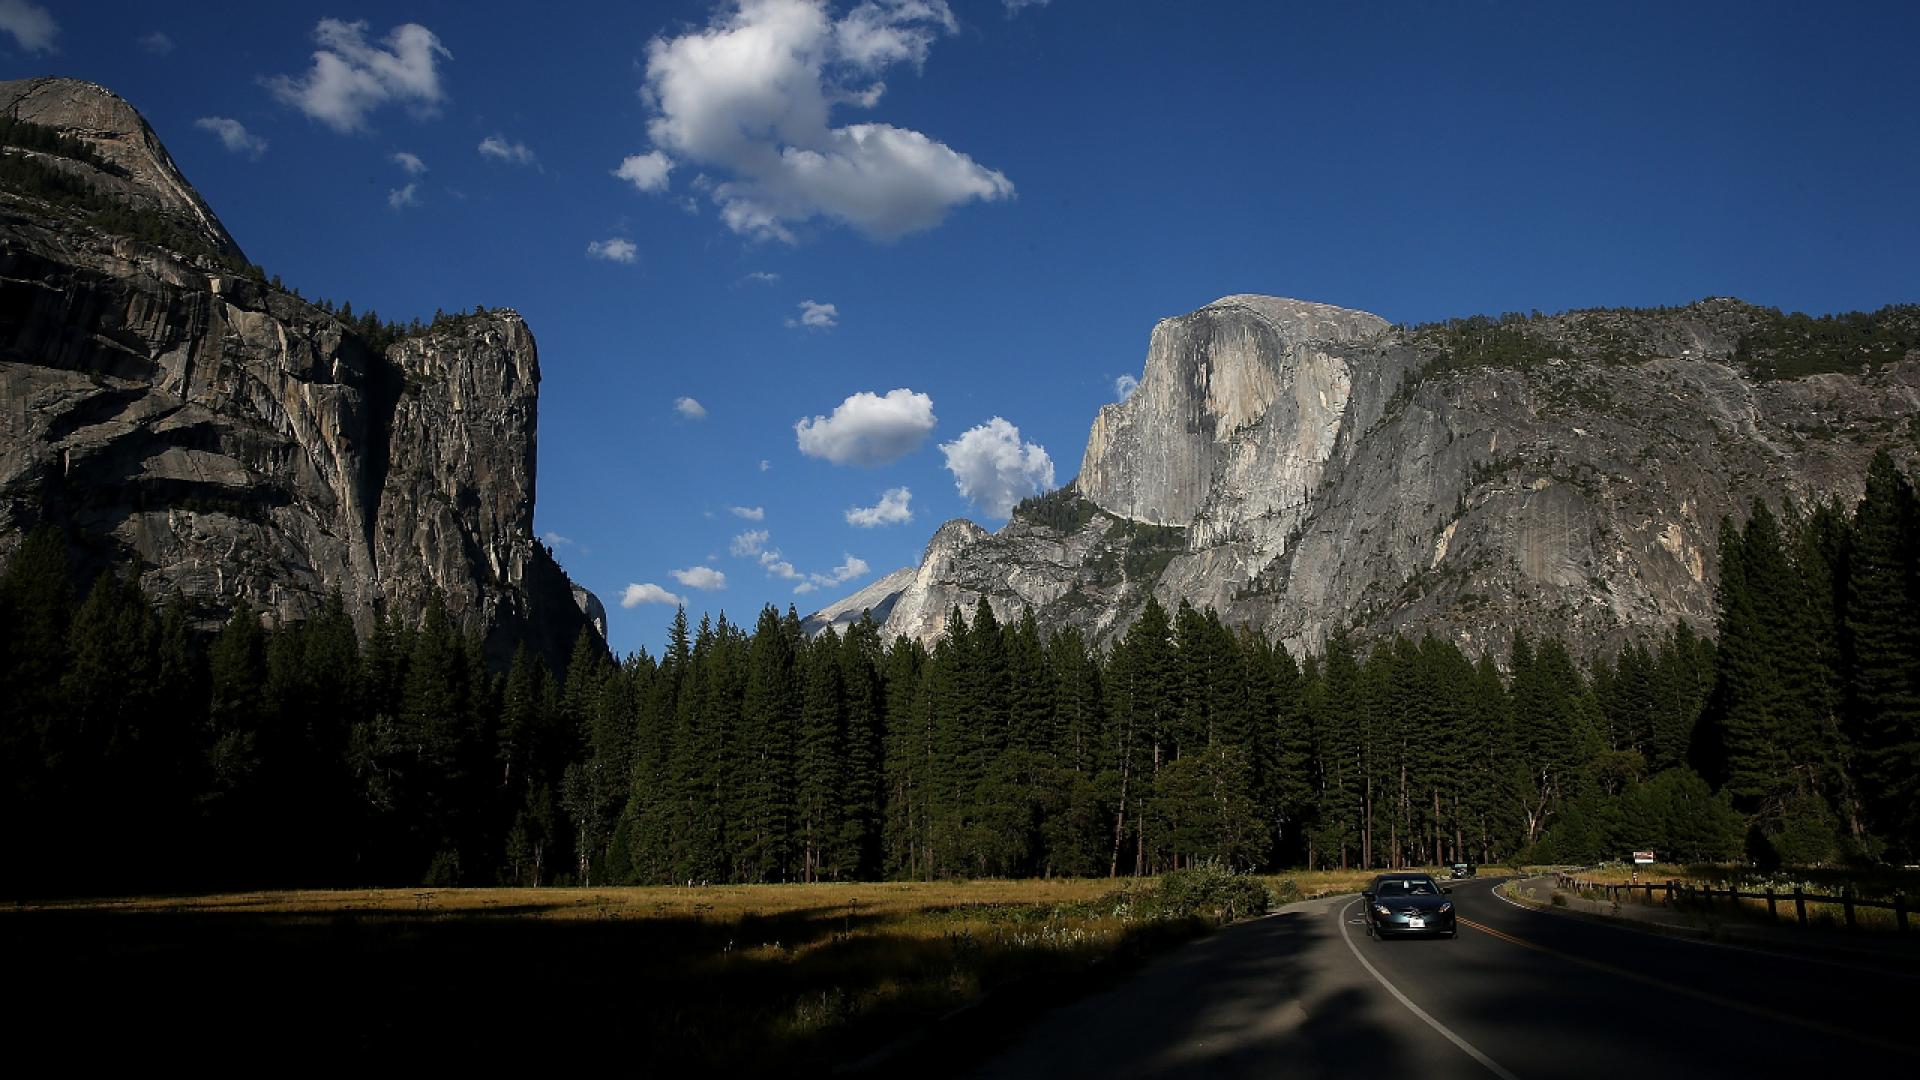 A woman died after falling 500 feet off Yosemite's Half Dome.